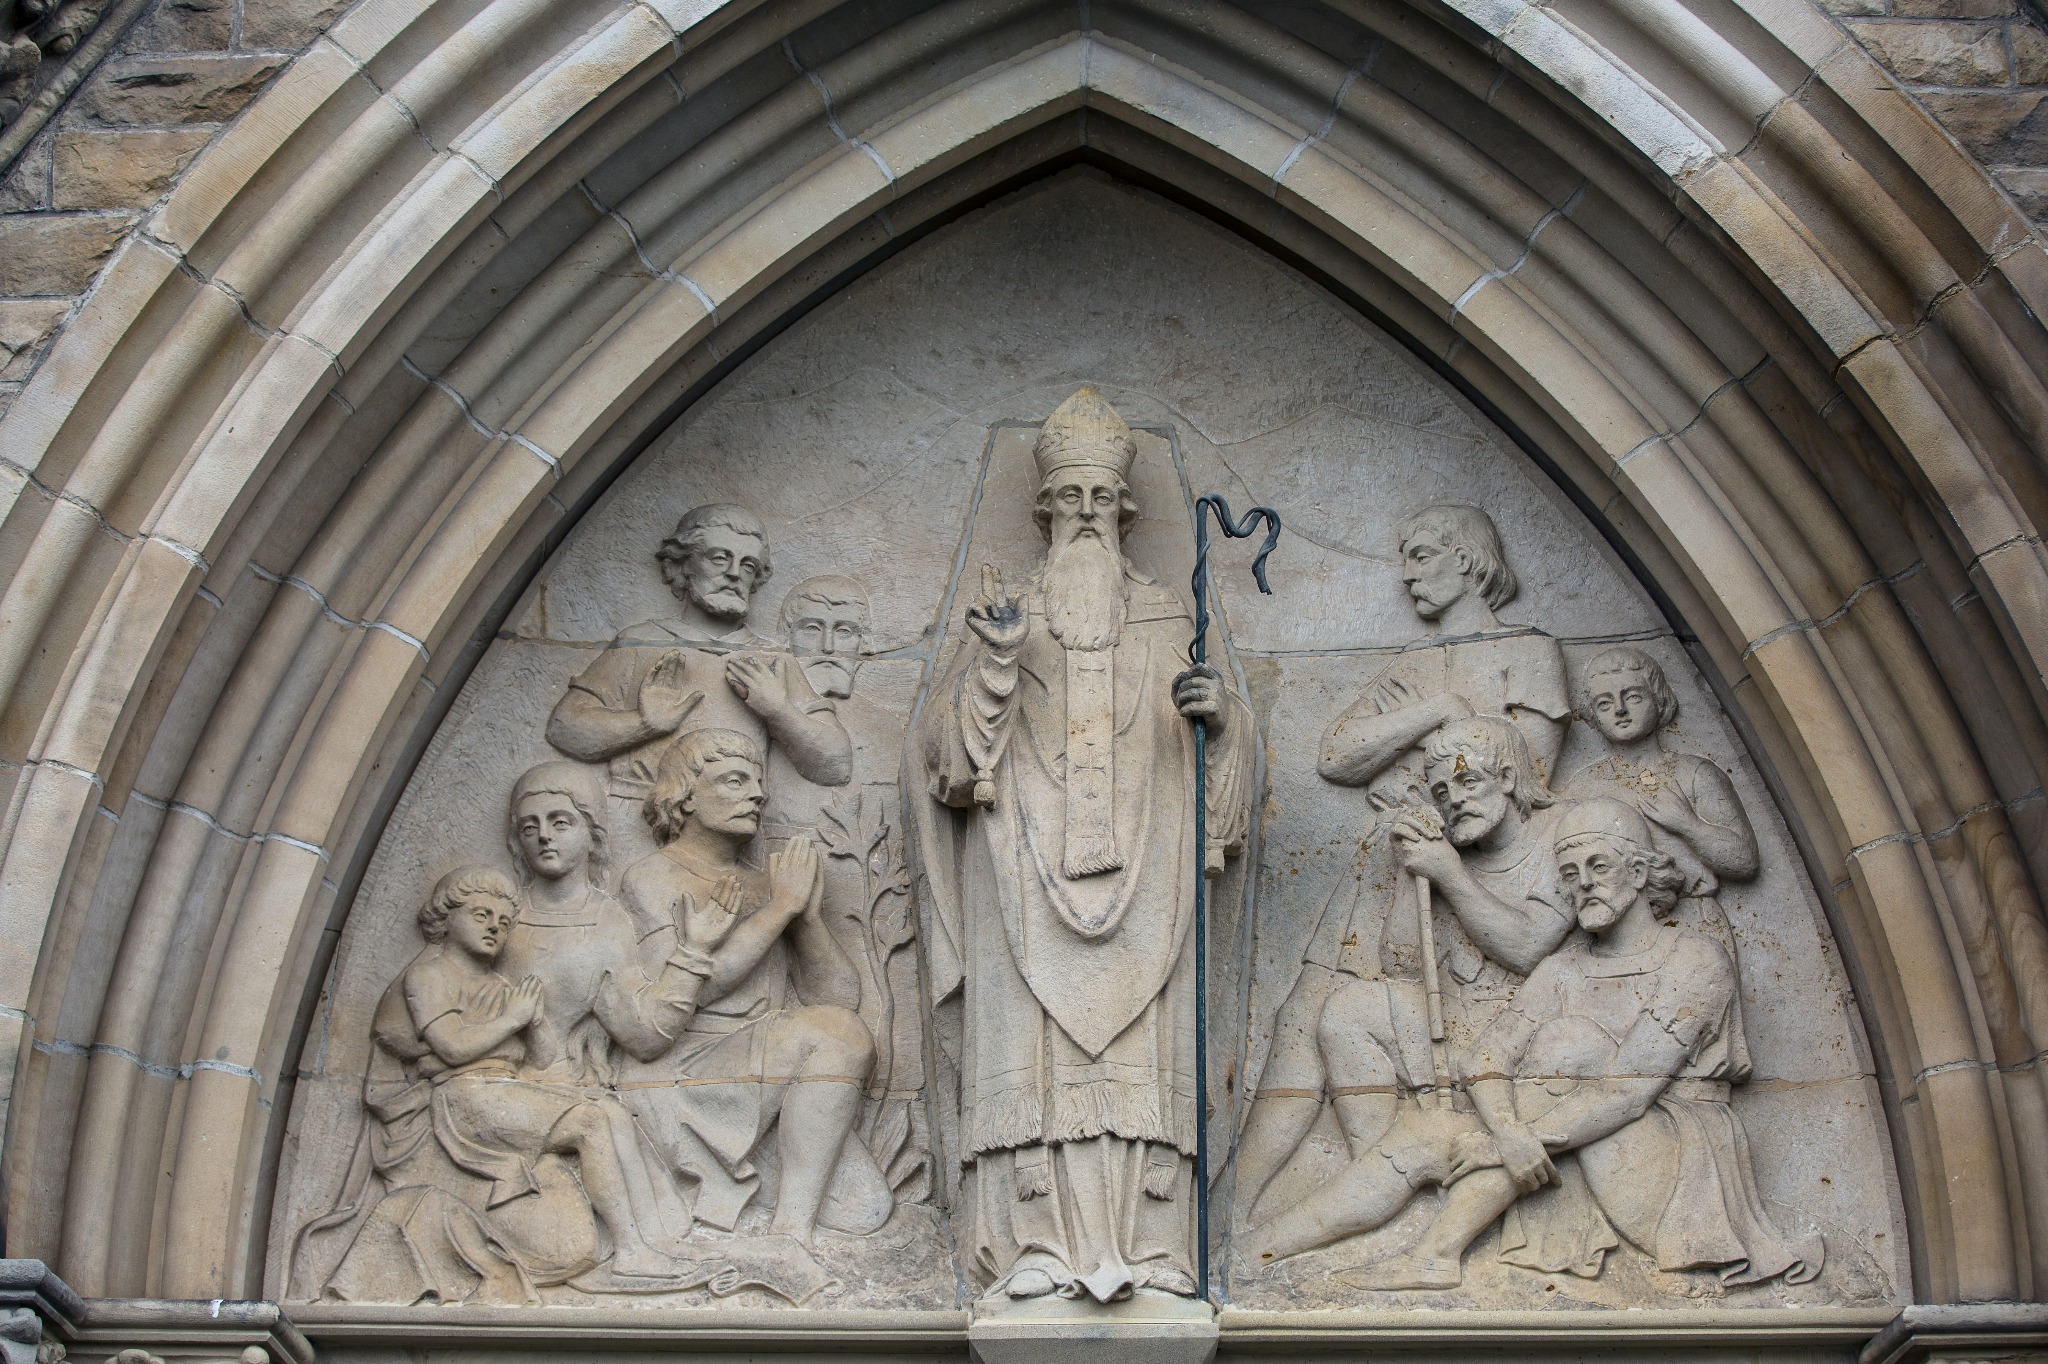 A statue of St. Patrick at a cathedral.